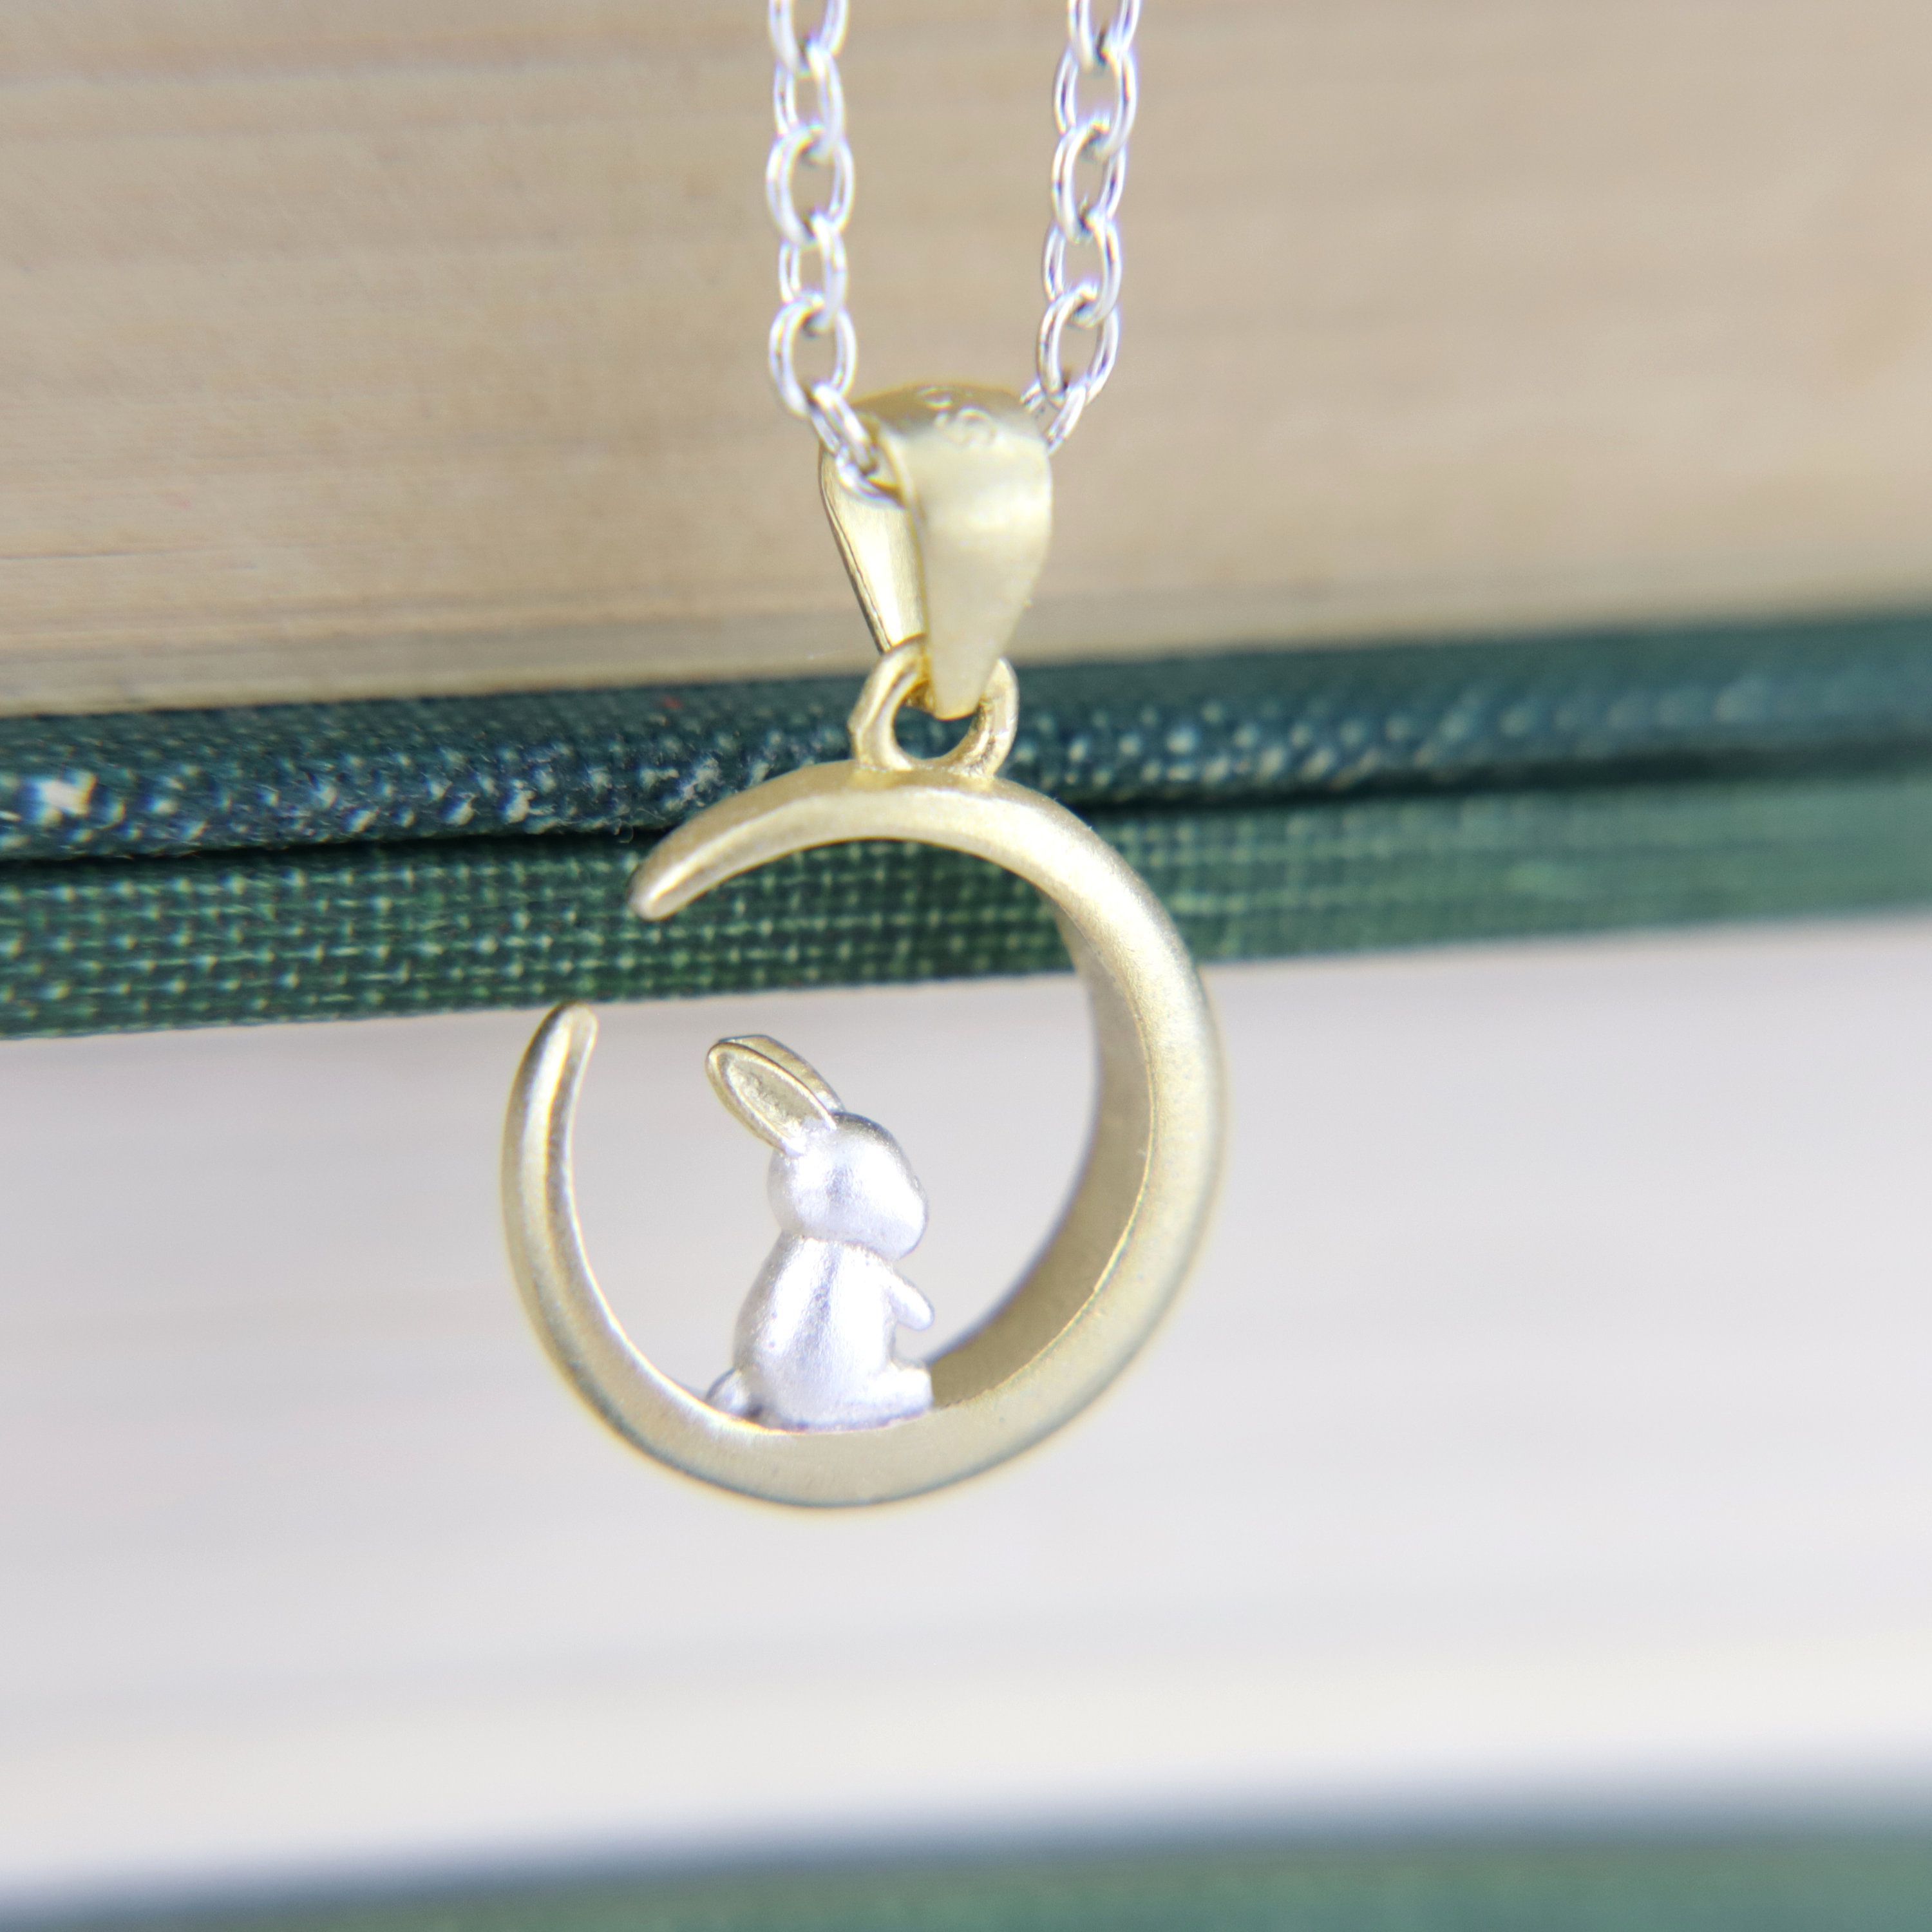 Bunny Moon Necklace, Rabbit Pendant, Two Tone, Chinese Folklore, Hare Moon,  Woodland Animal Jewellery, Easter, Japan Autumn, Gift for Her